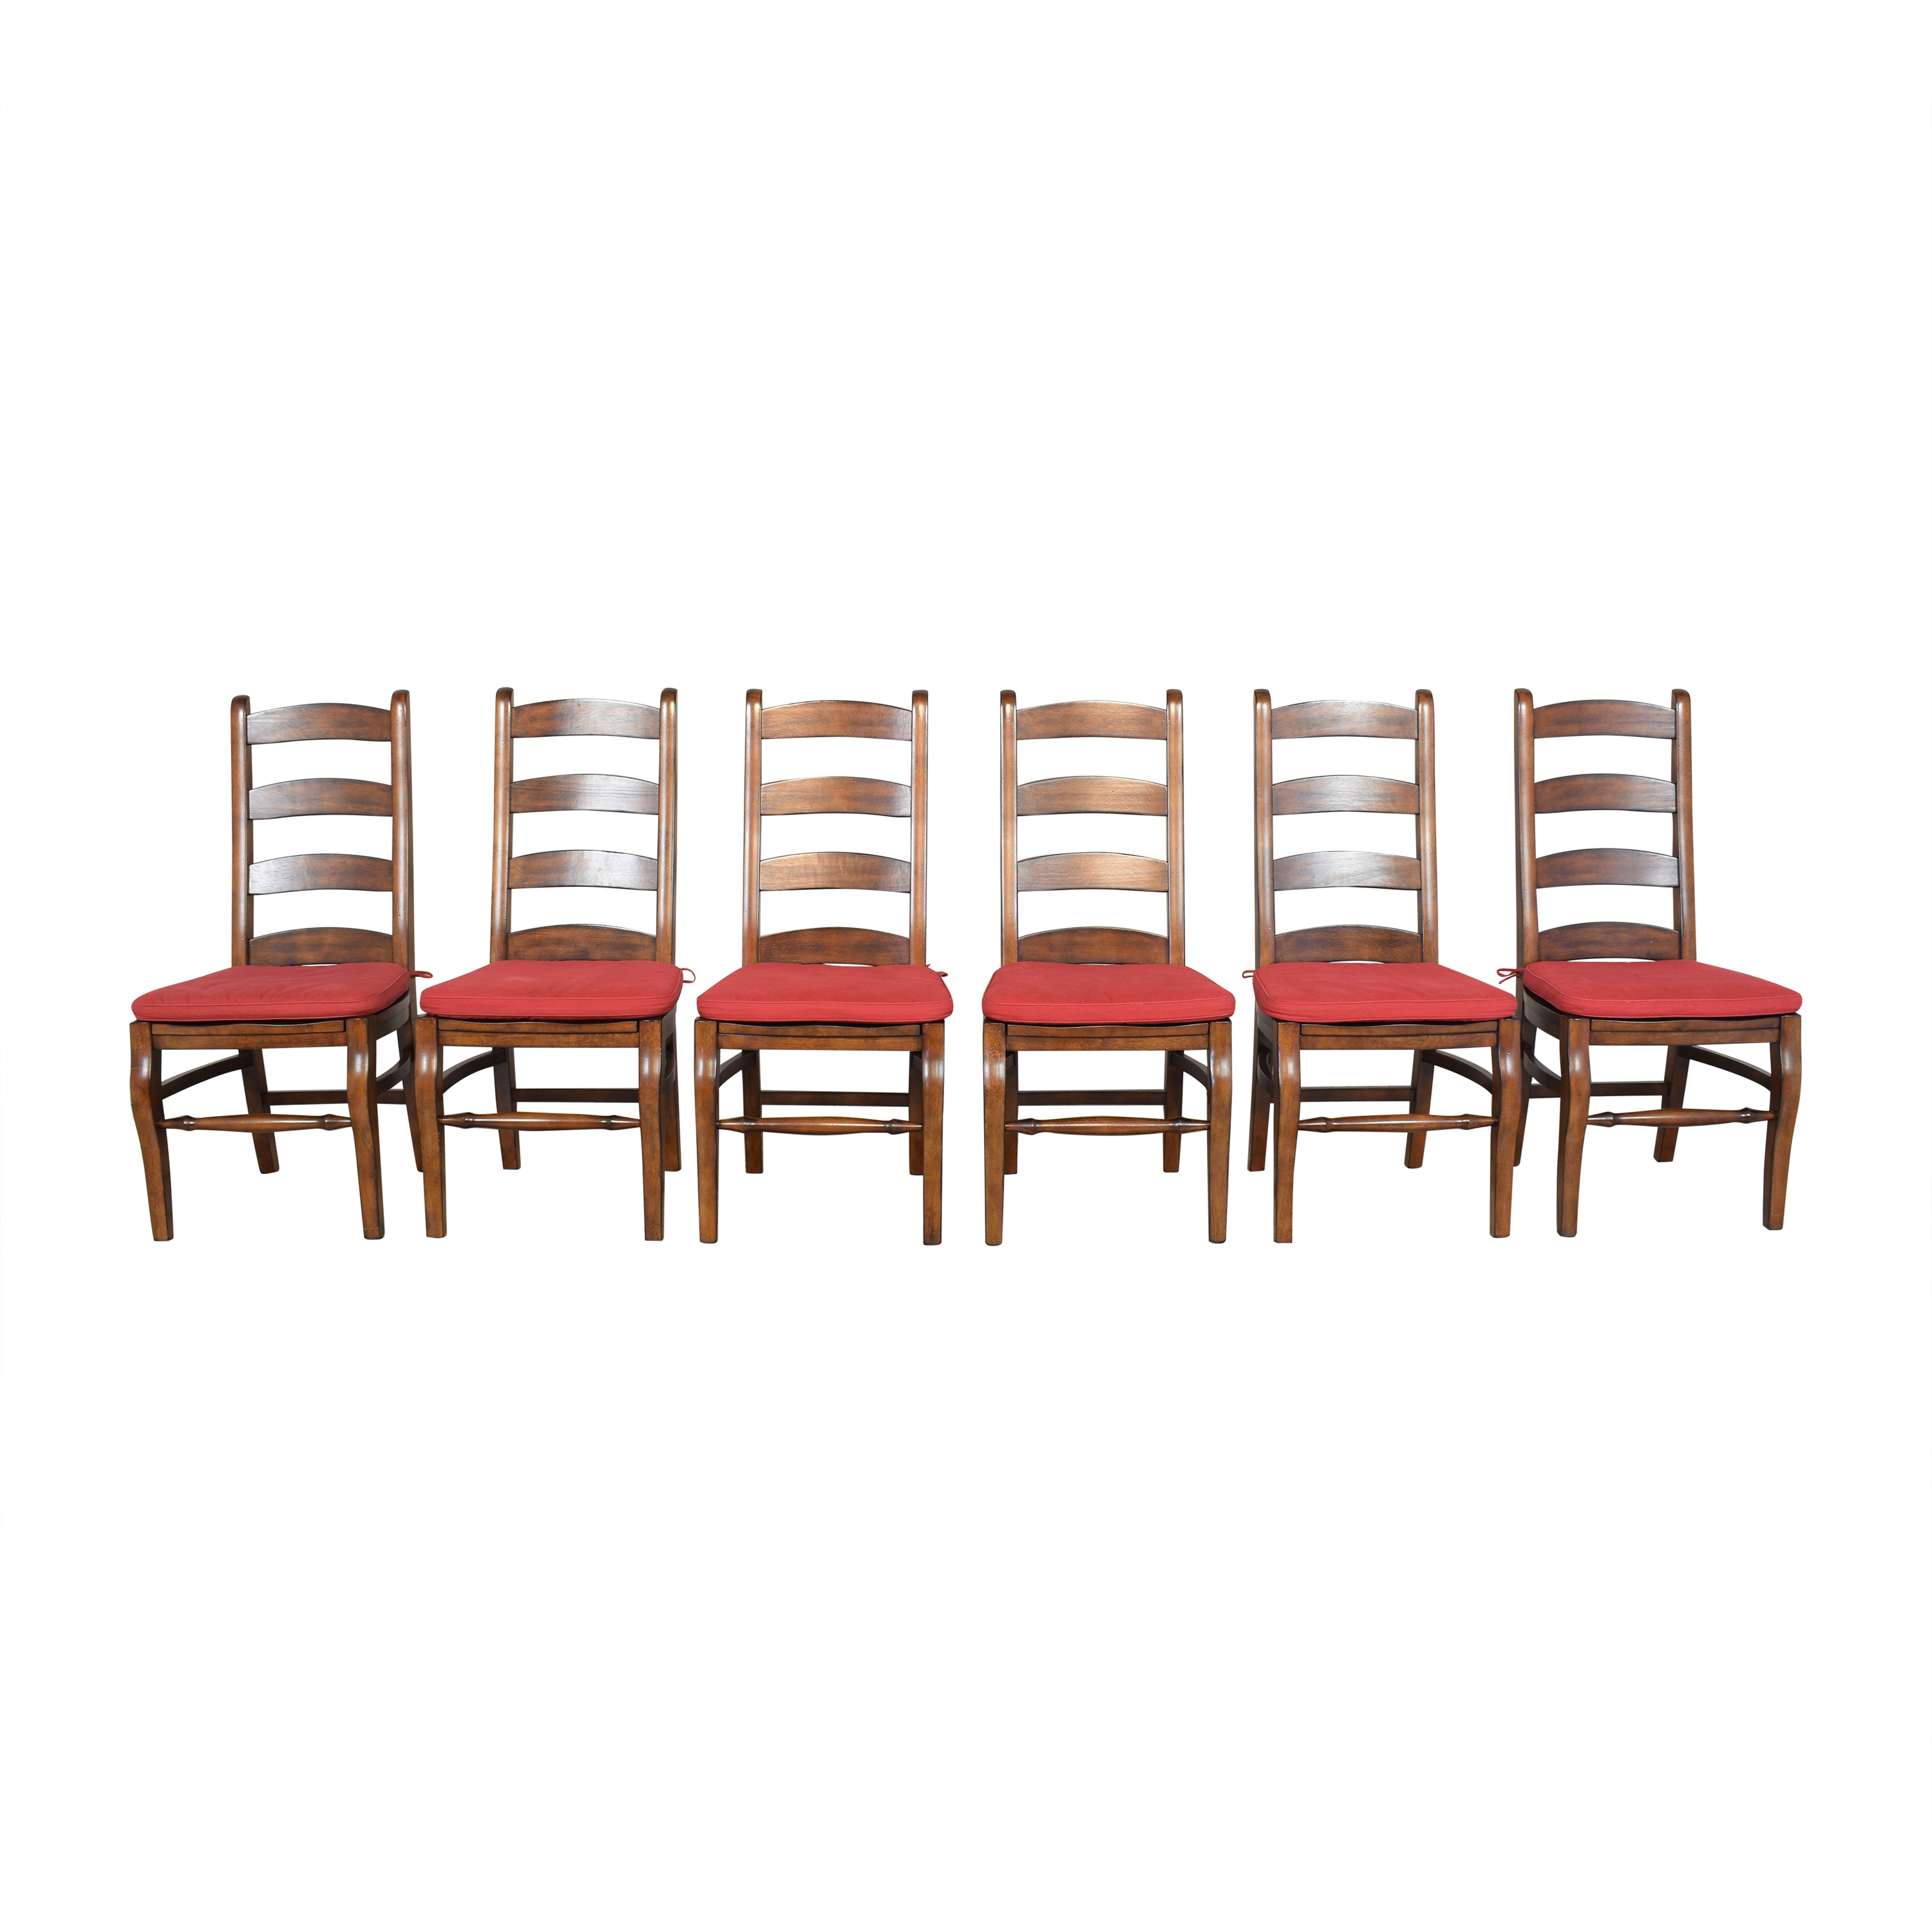 Pottery Barn Pottery Barn Wynn Ladderback Dining Chairs brown and red